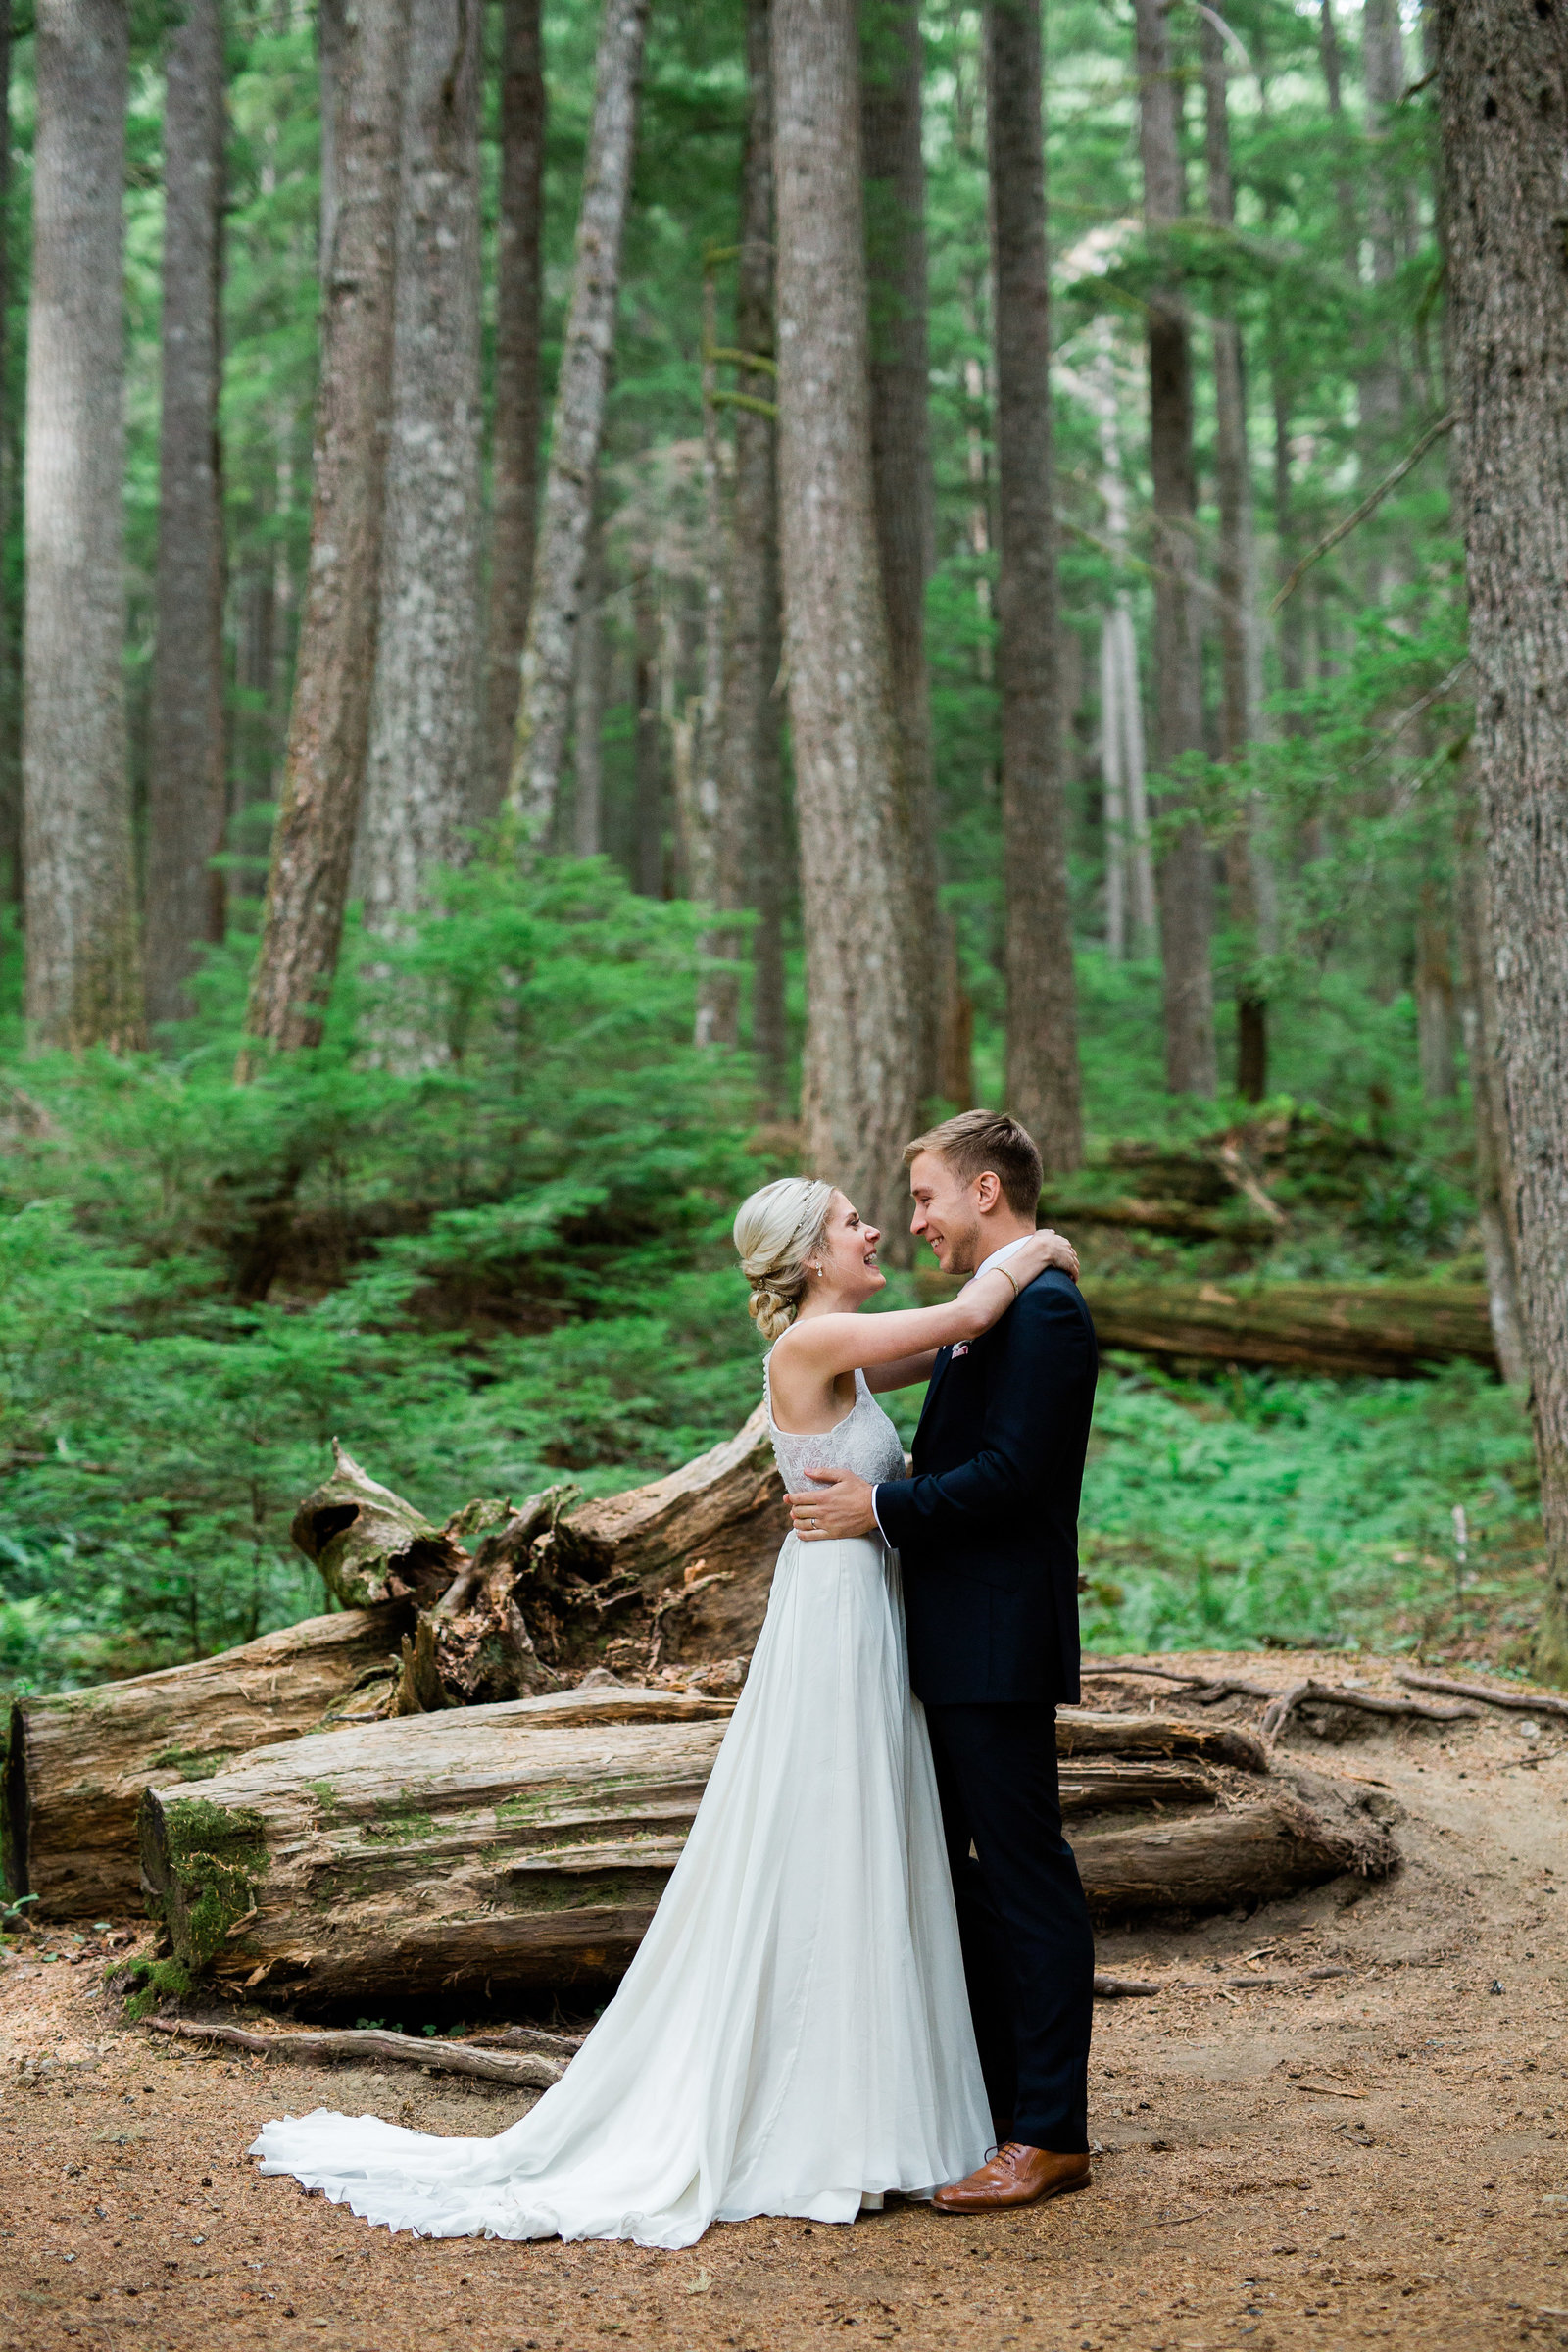 mount-rainier-national-park-elopement-cameron-zegers-photographer-seattle-95